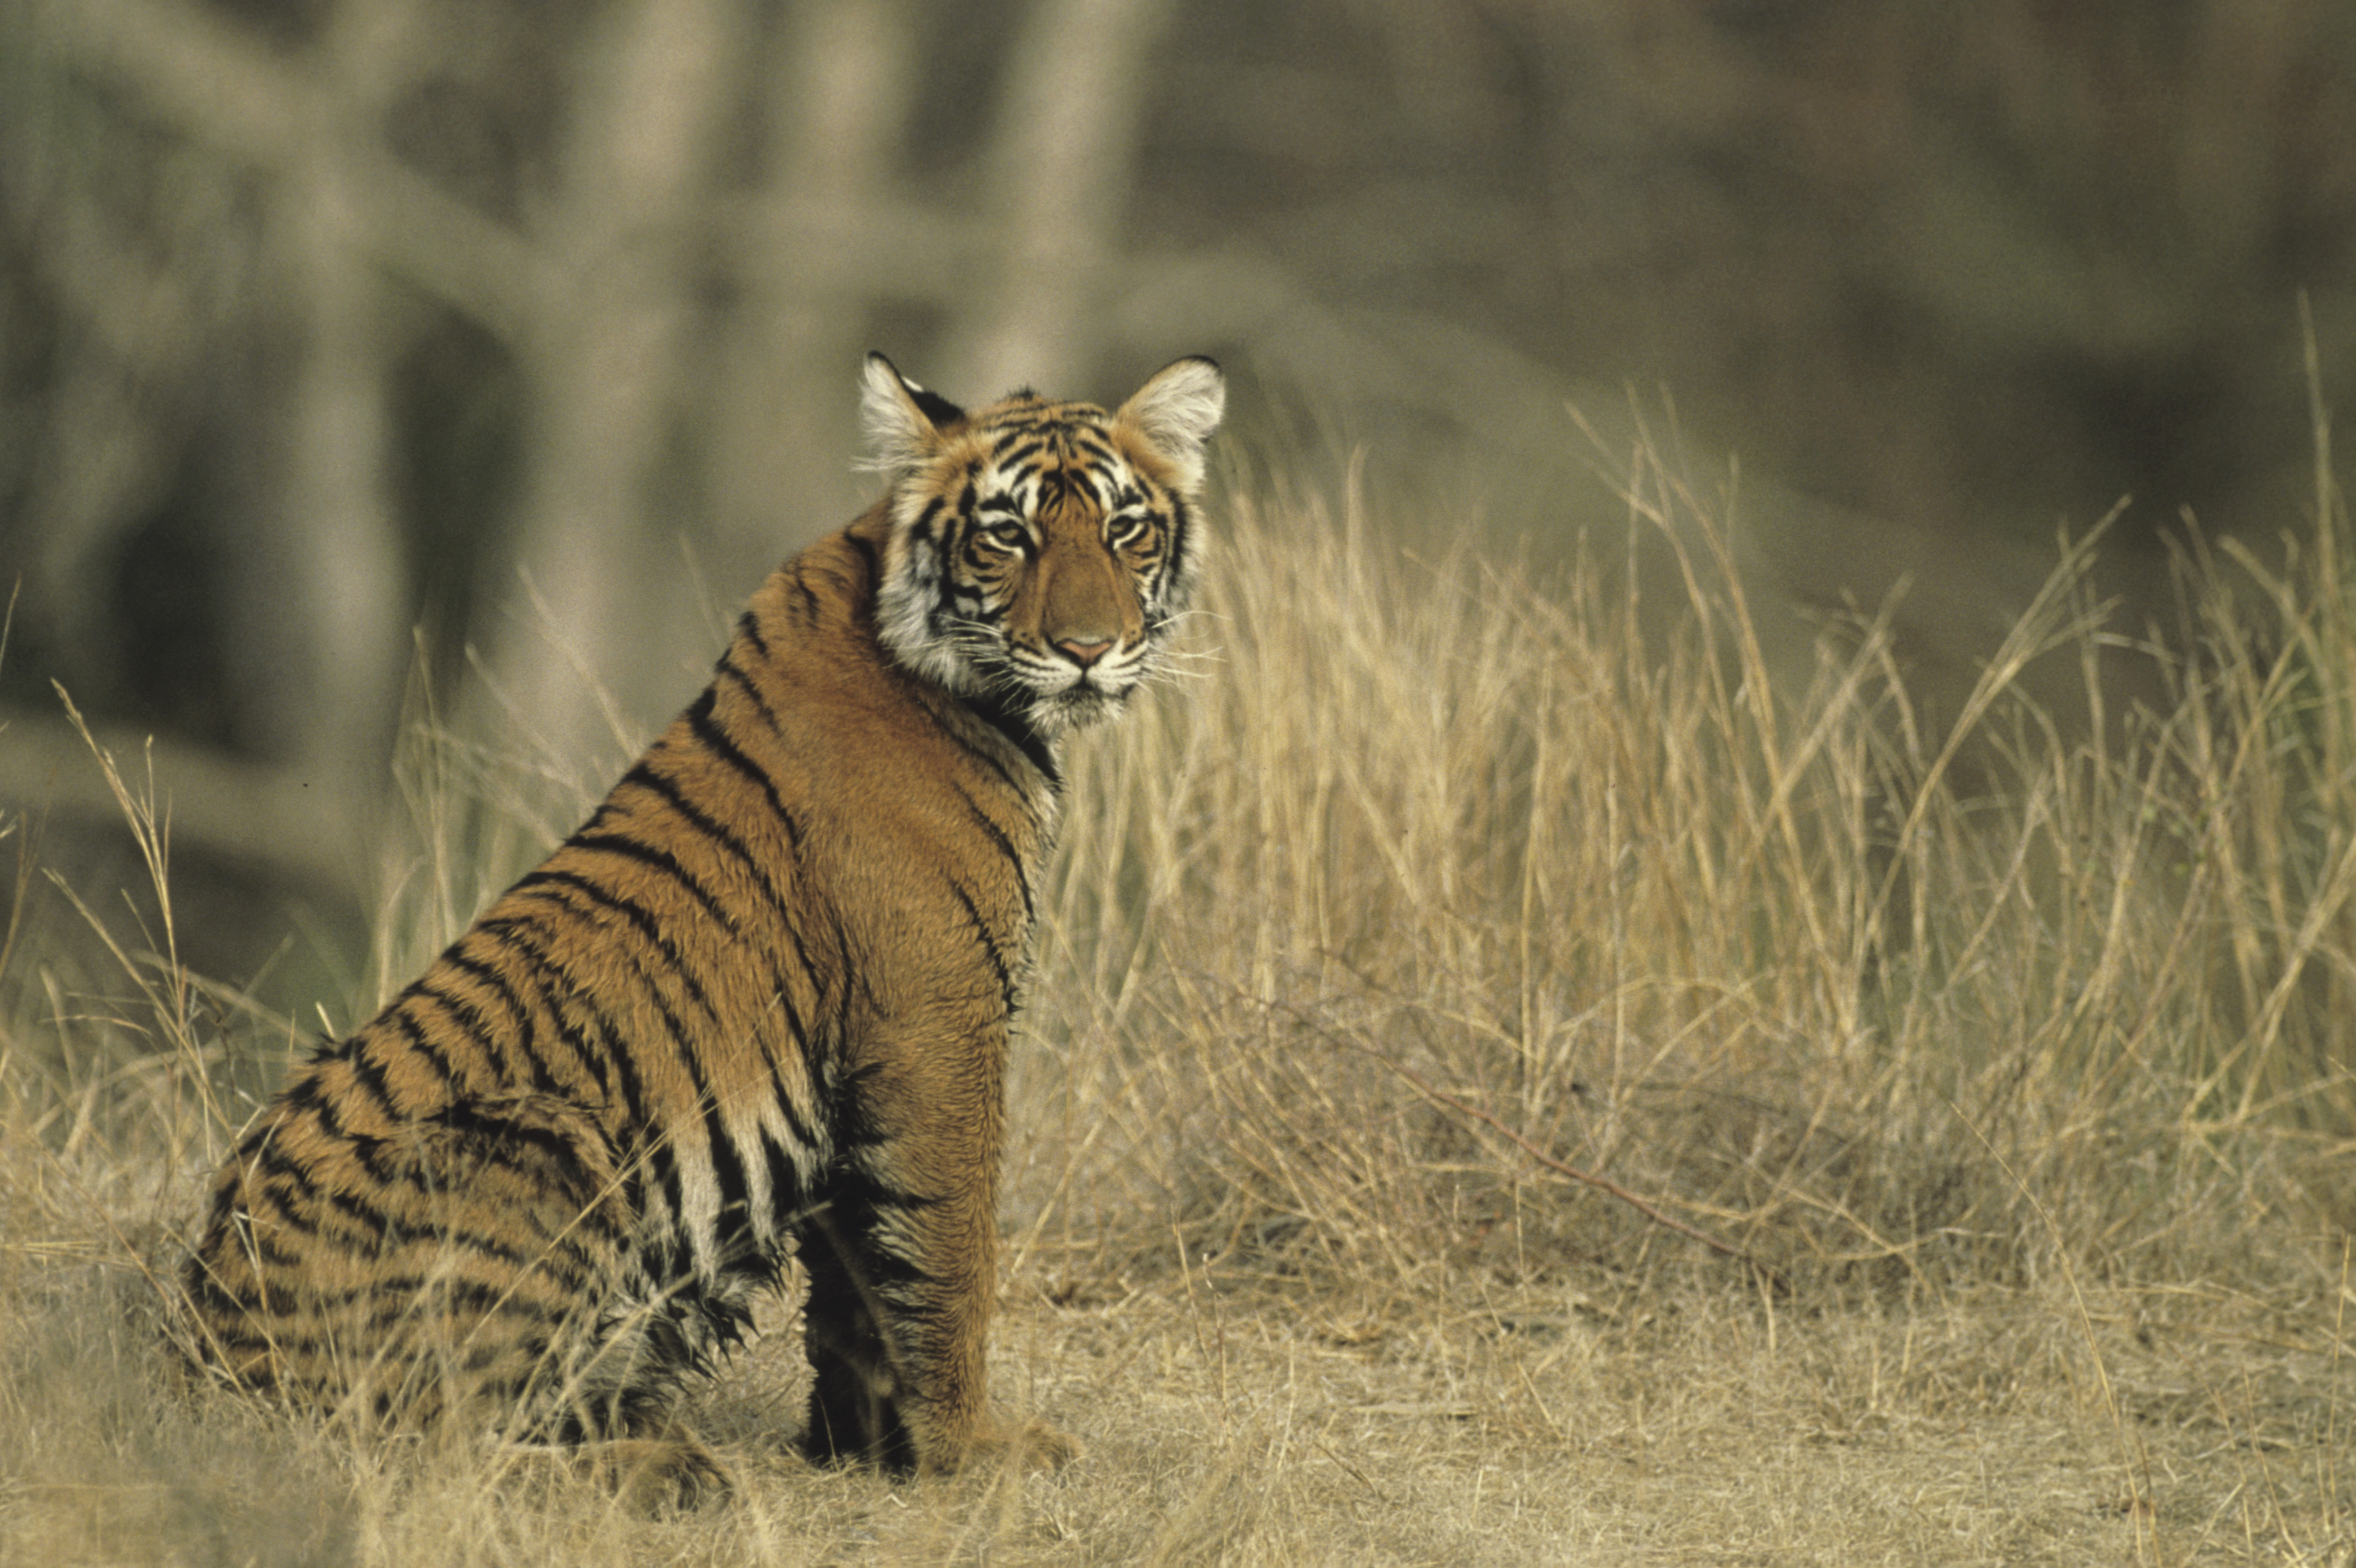 Go tiger spotting in Rajasthan, India